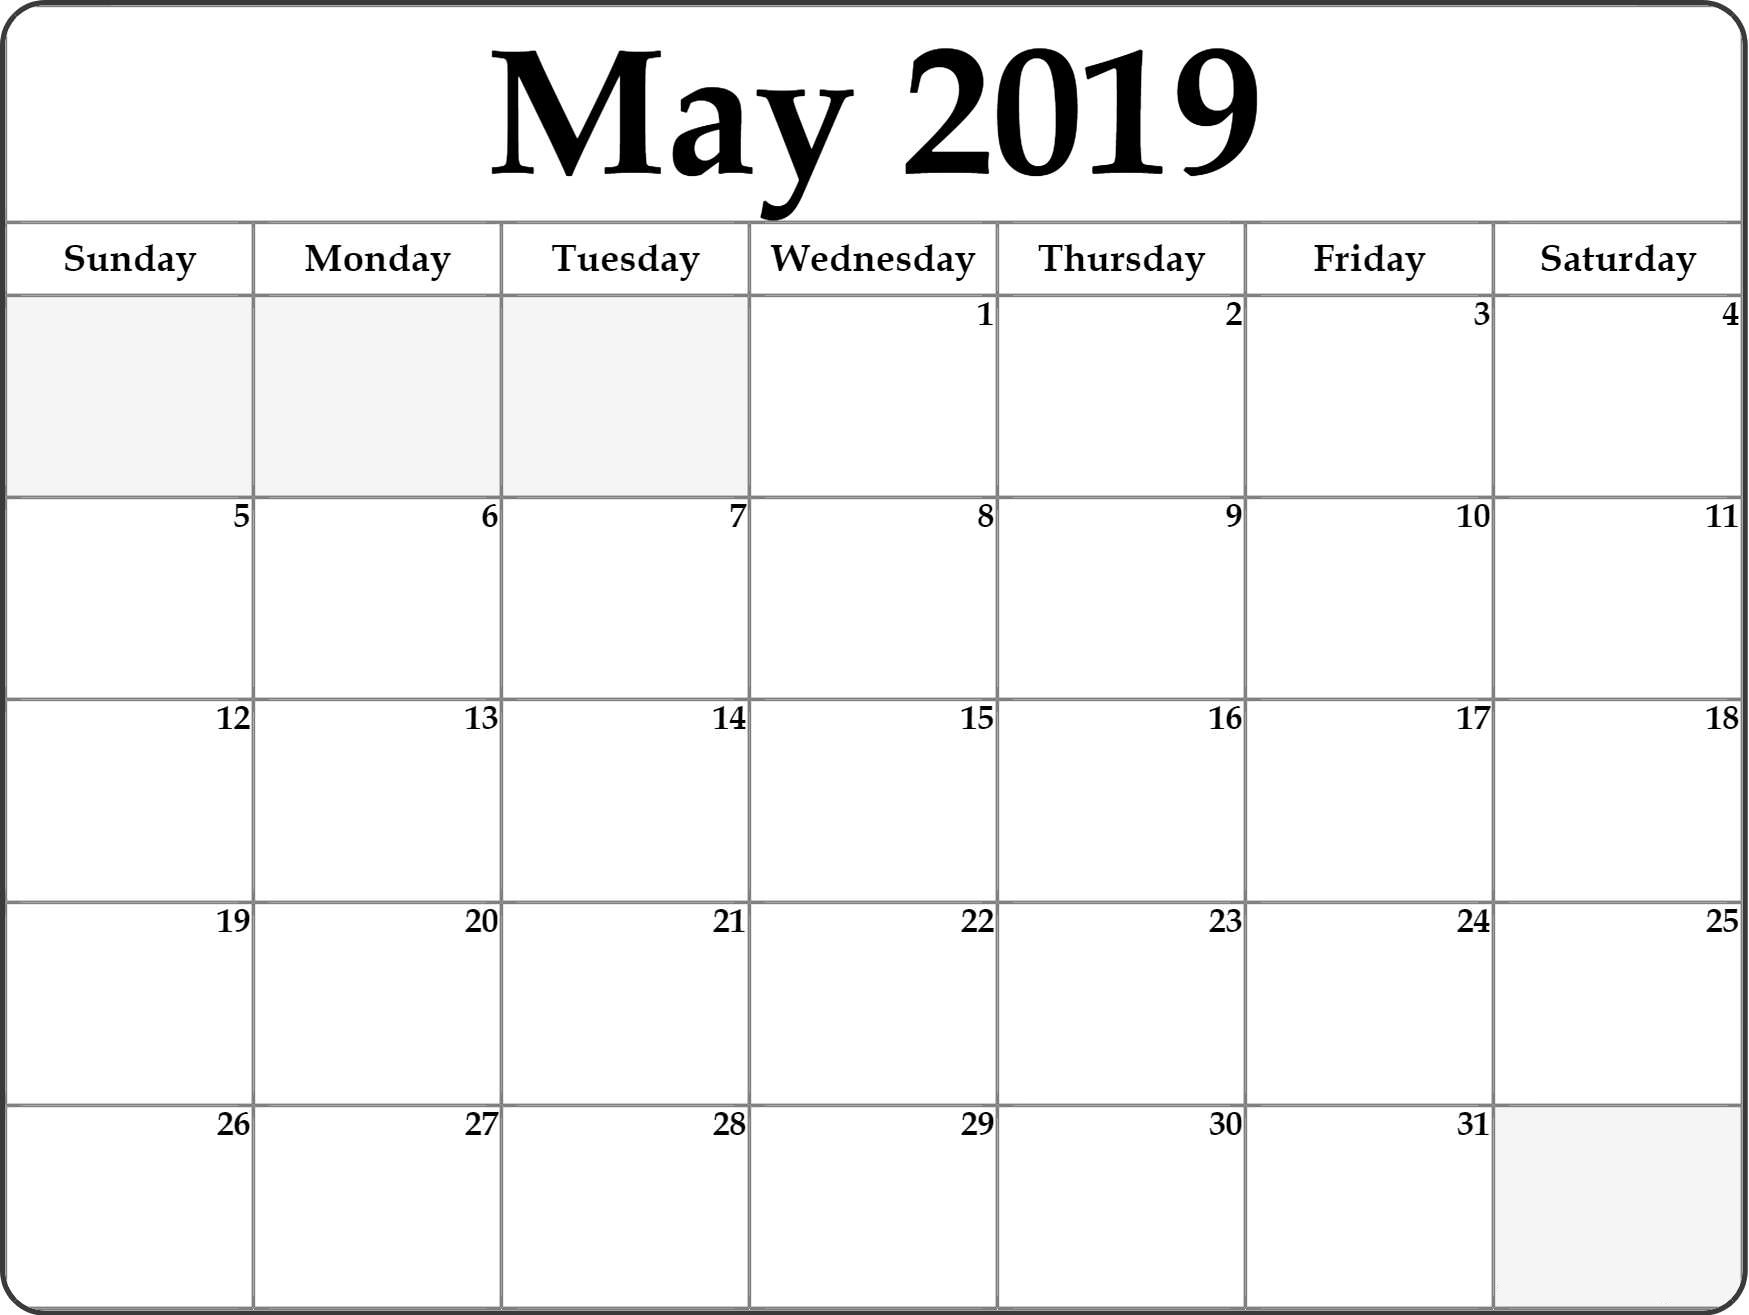 Blank Calendar Template for May 2019